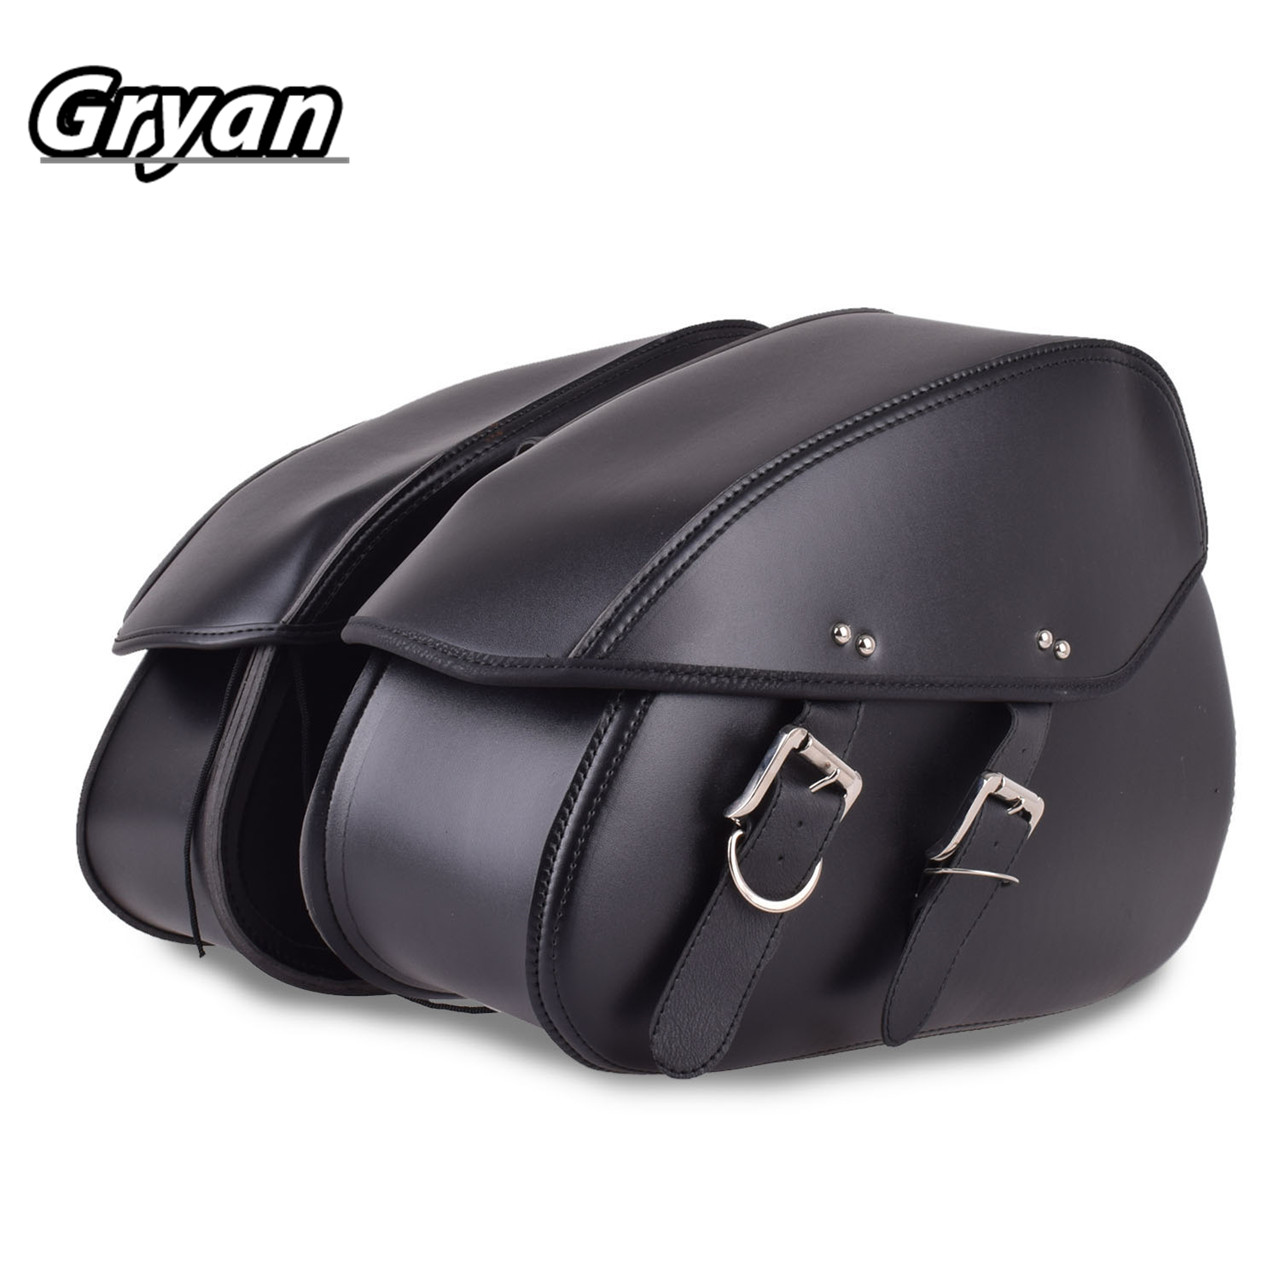 High Capacity Motorcycle Saddlebag leather motorcycle bag For Harley Sportster XL 883 XL 1200 For BMW JS1505 outdoor Bags mtsooning timing cover and 1 derby cover for harley davidson xlh 883 sportster 1986 2004 xl 883 sportster custom 1998 2008 883l